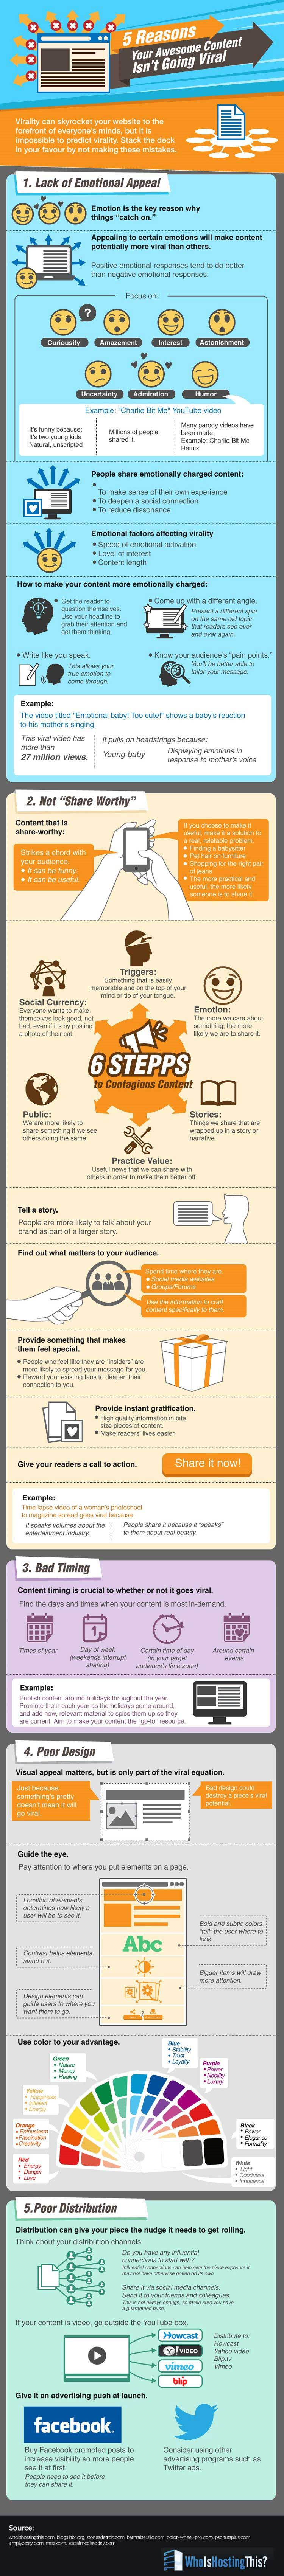 Five Reasons Your Awesome Content Isn't Going Viral [Infographic]